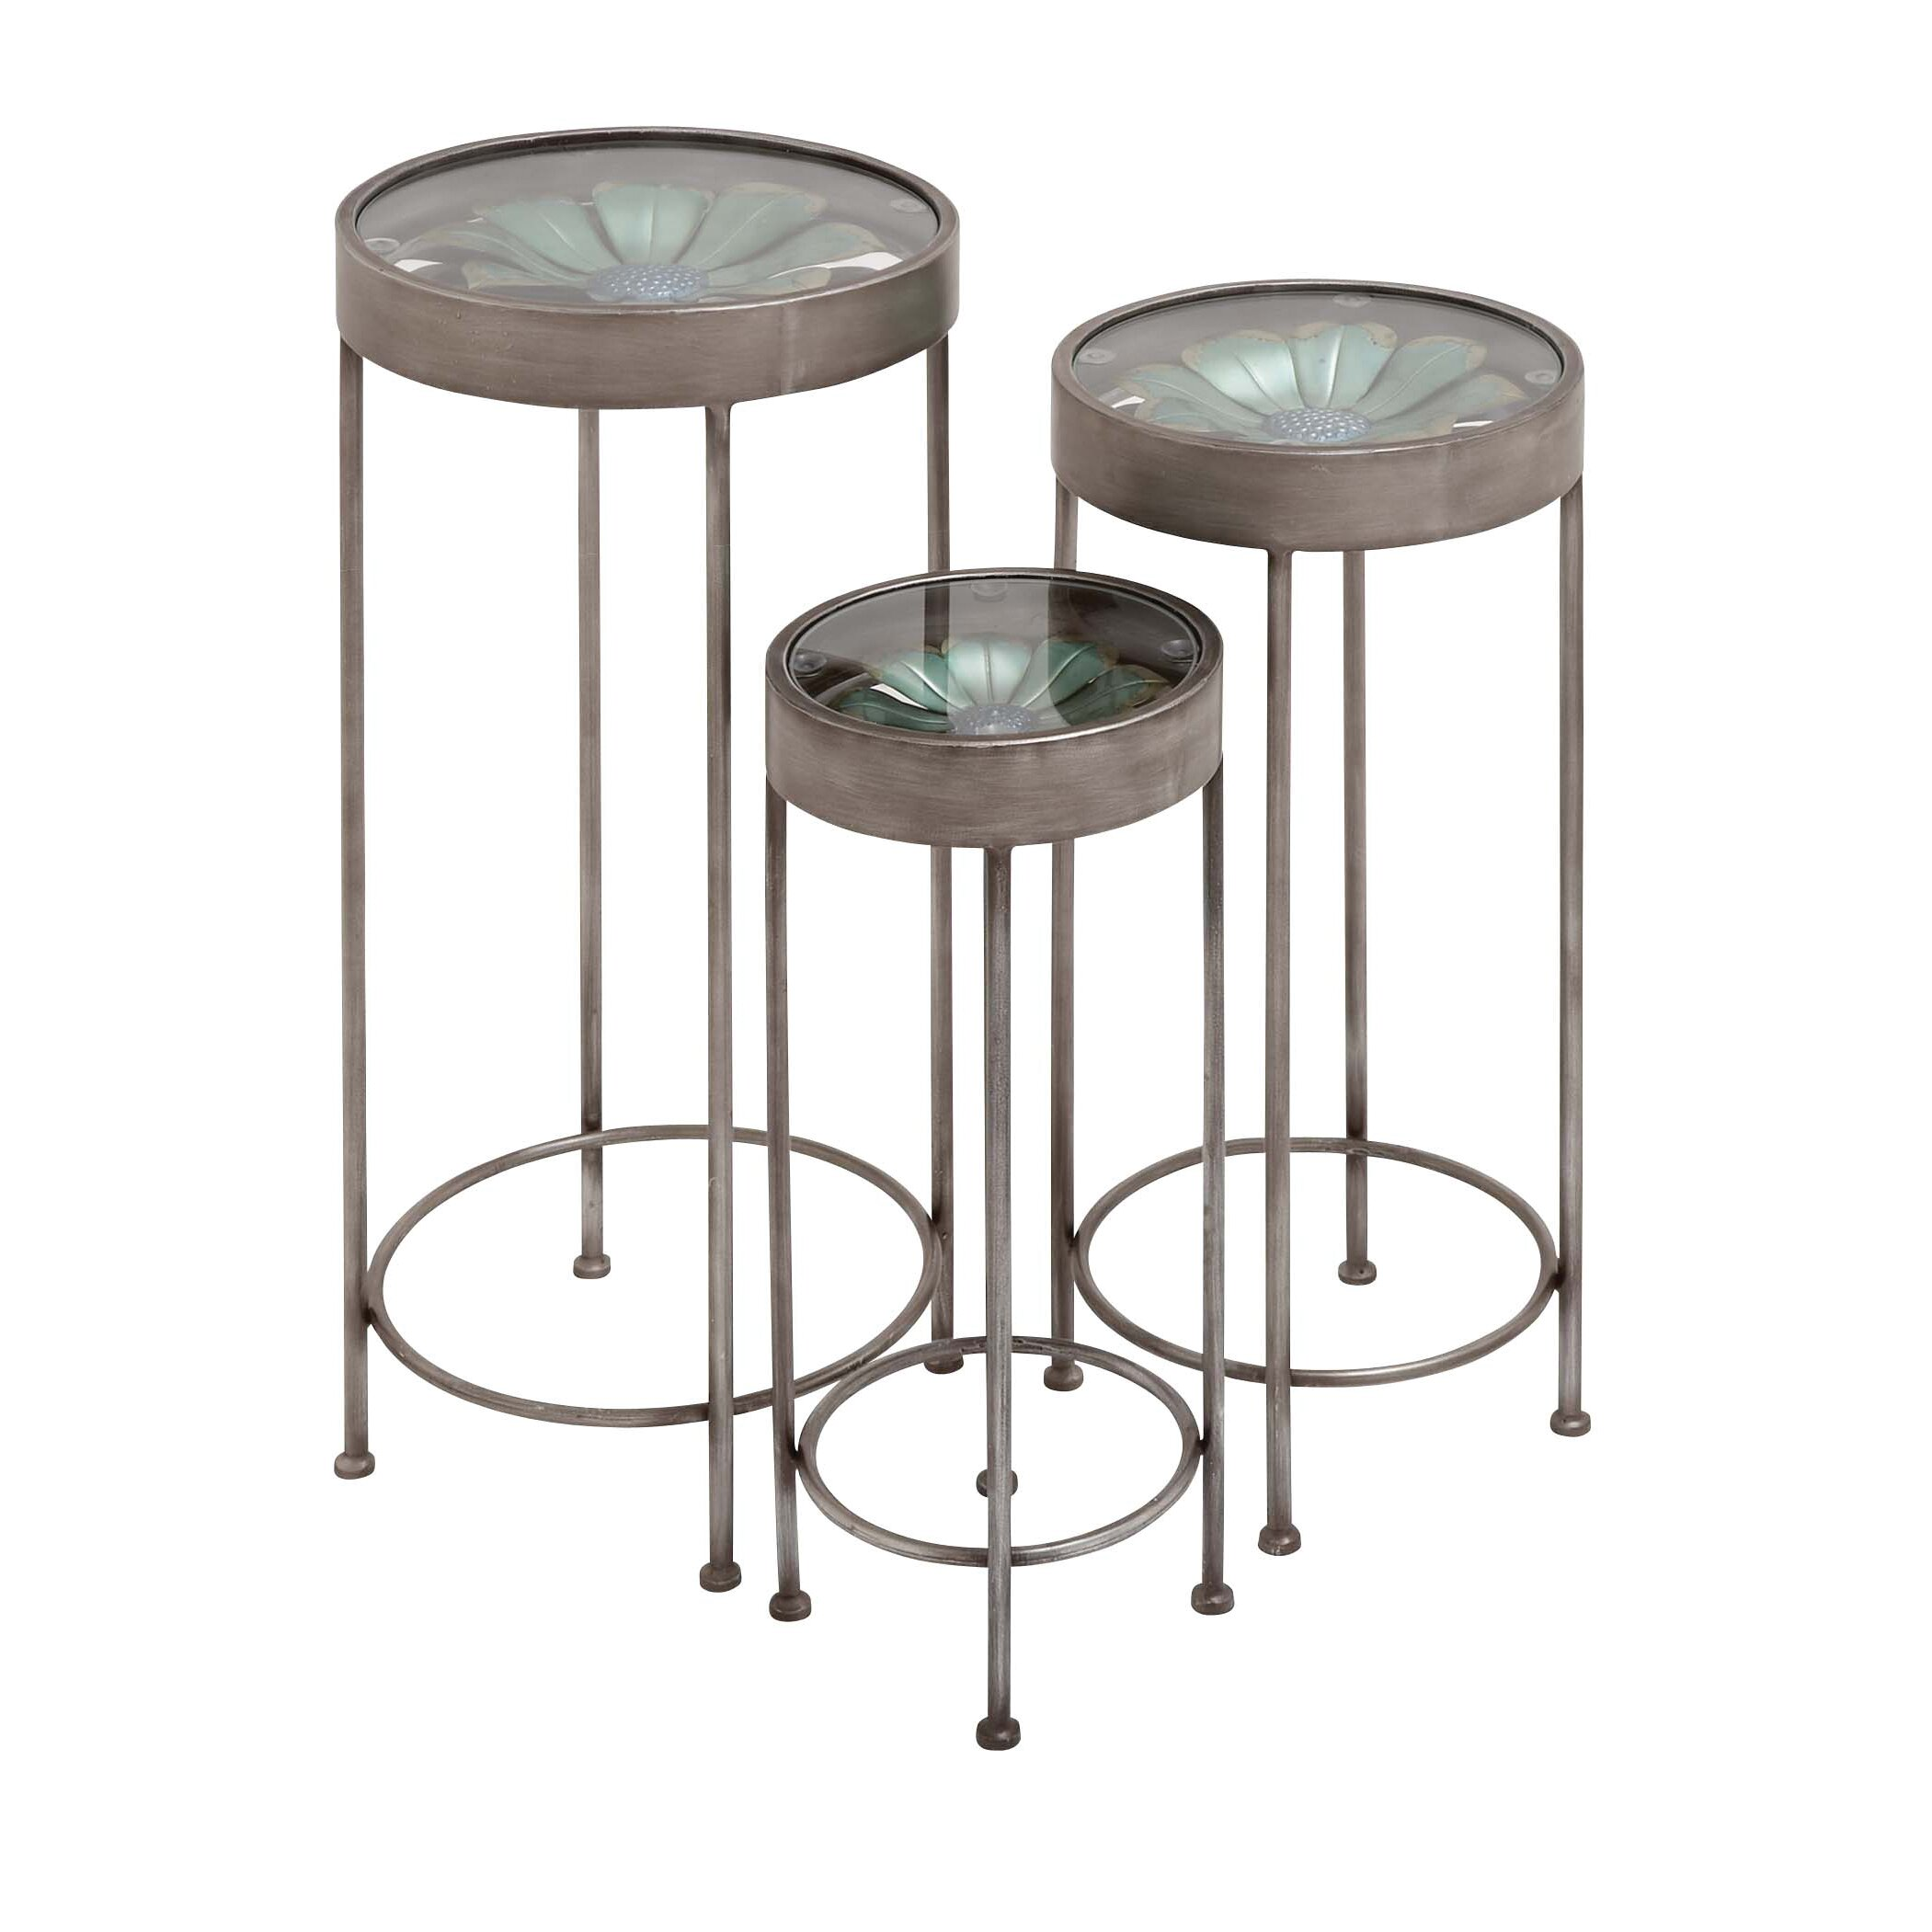 Woodland Imports 3 Piece The Super Cool Plant Stand Set & Reviews